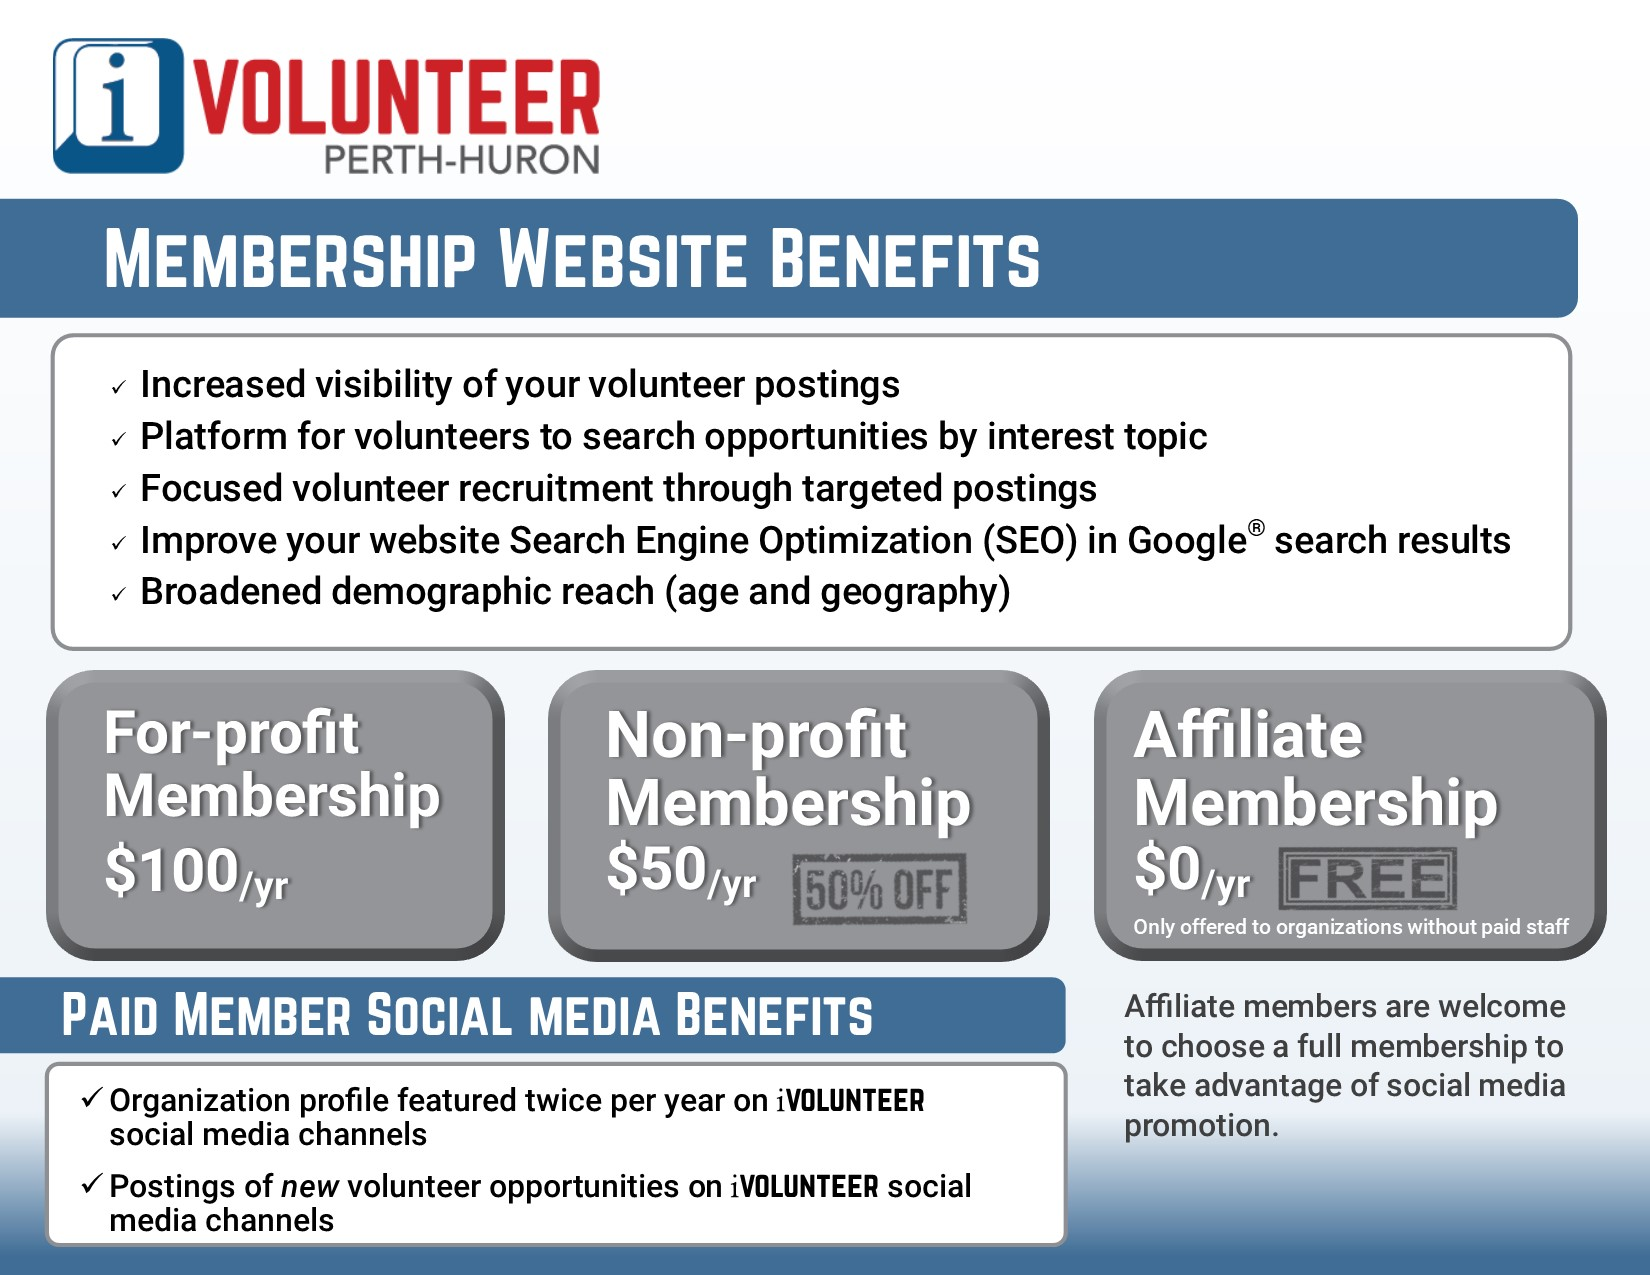 Become a Member Organization - I Volunteer Perth - Huron